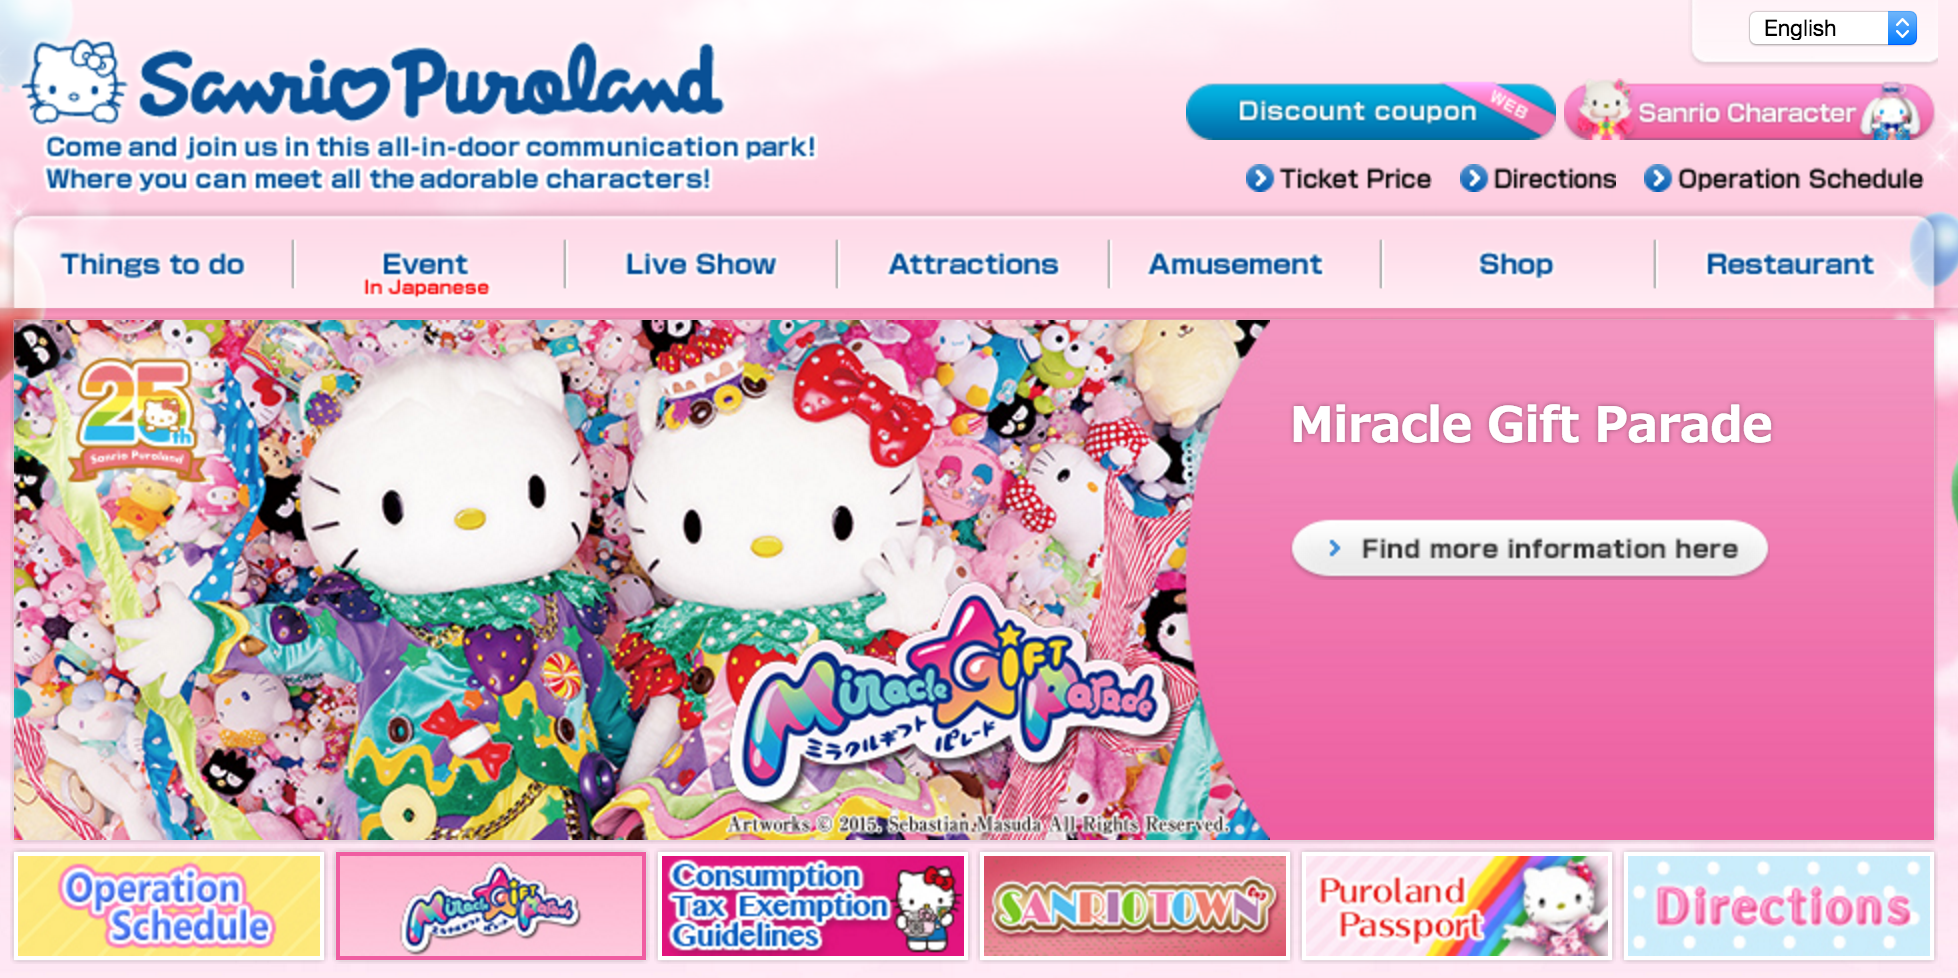 sanrio puroland website